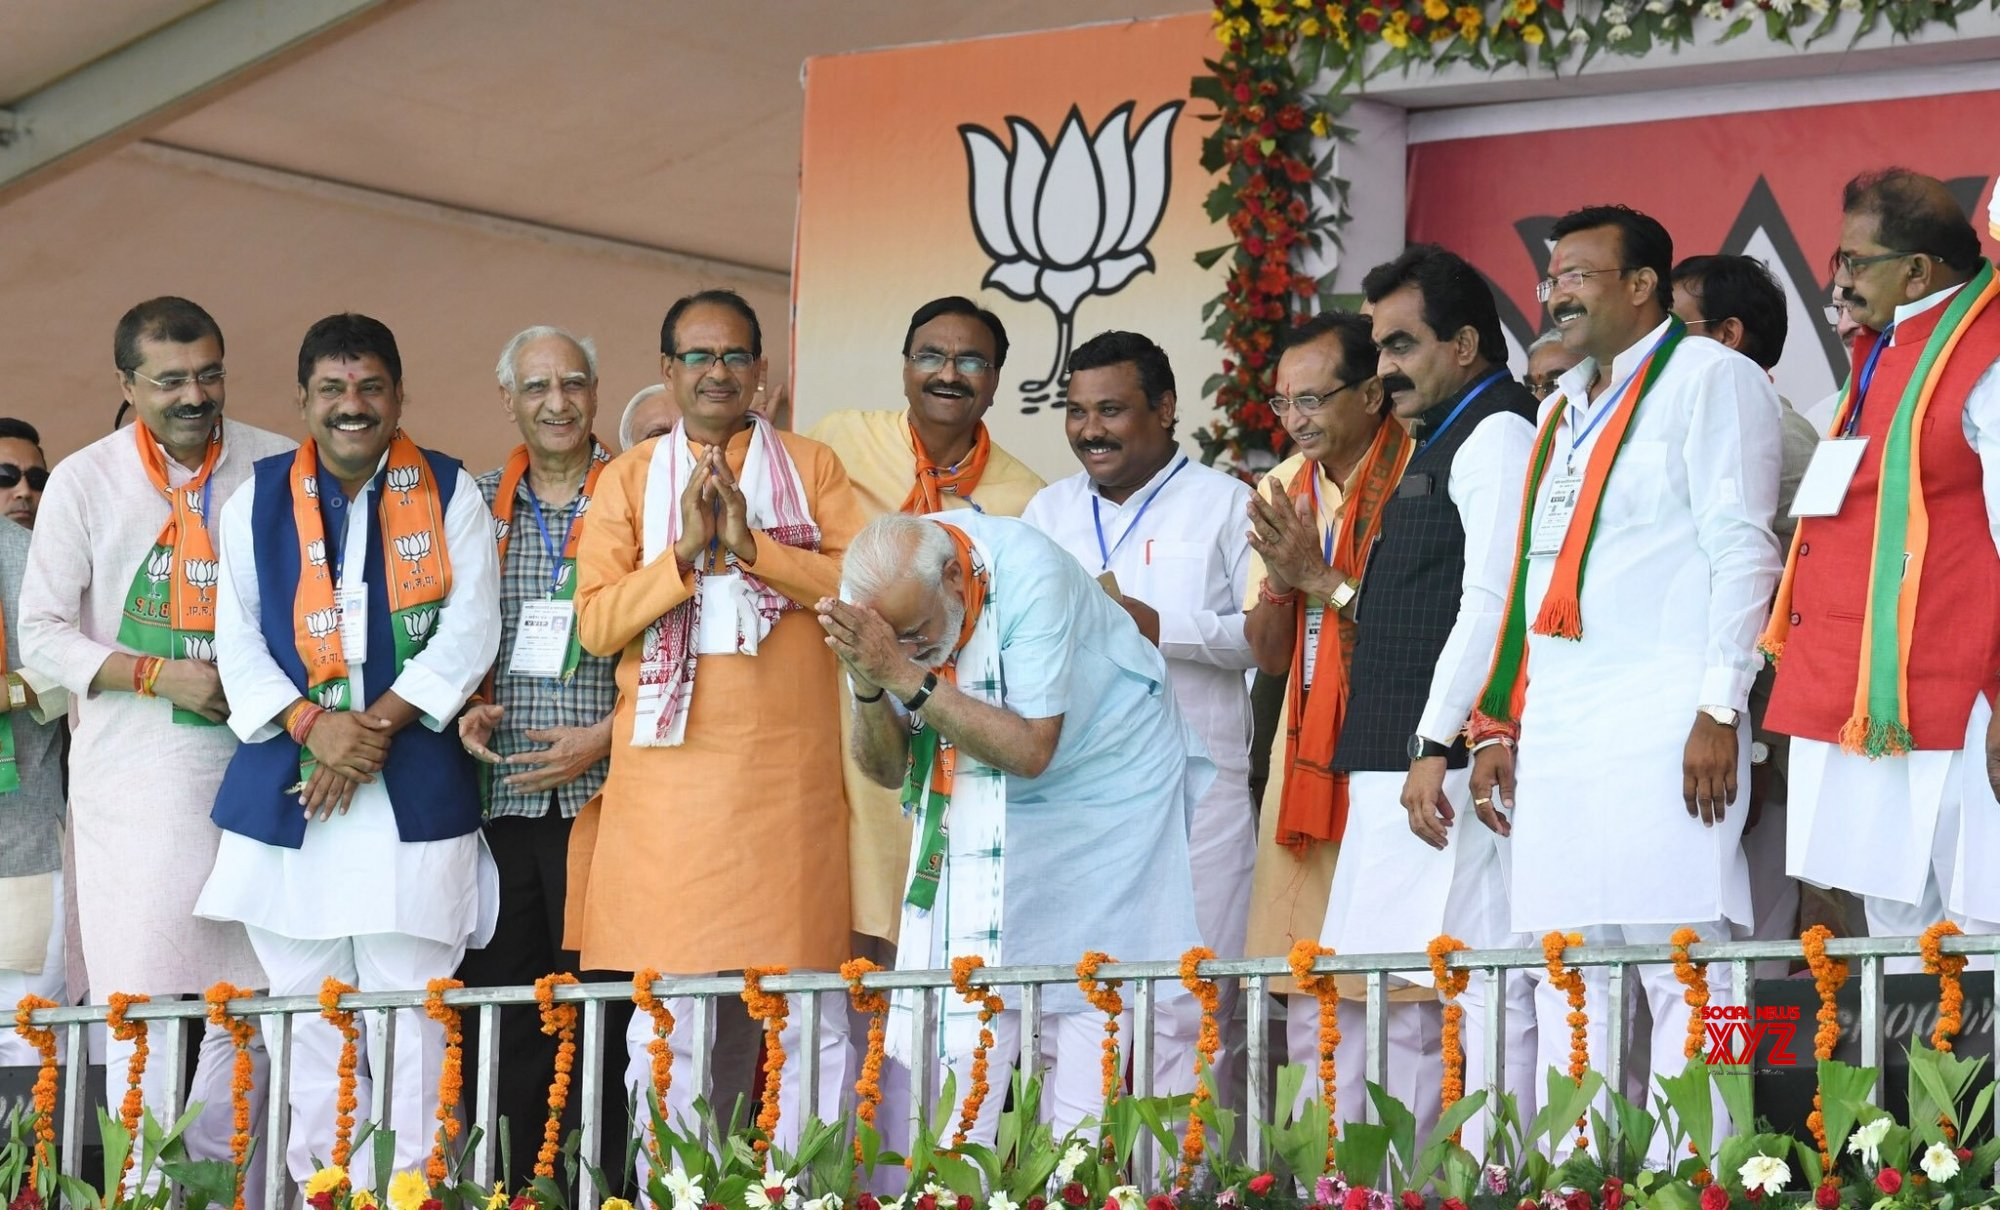 Khargone: PM Modi at BJP rally in Madhya Pradesh (Batch - 2) #Gallery